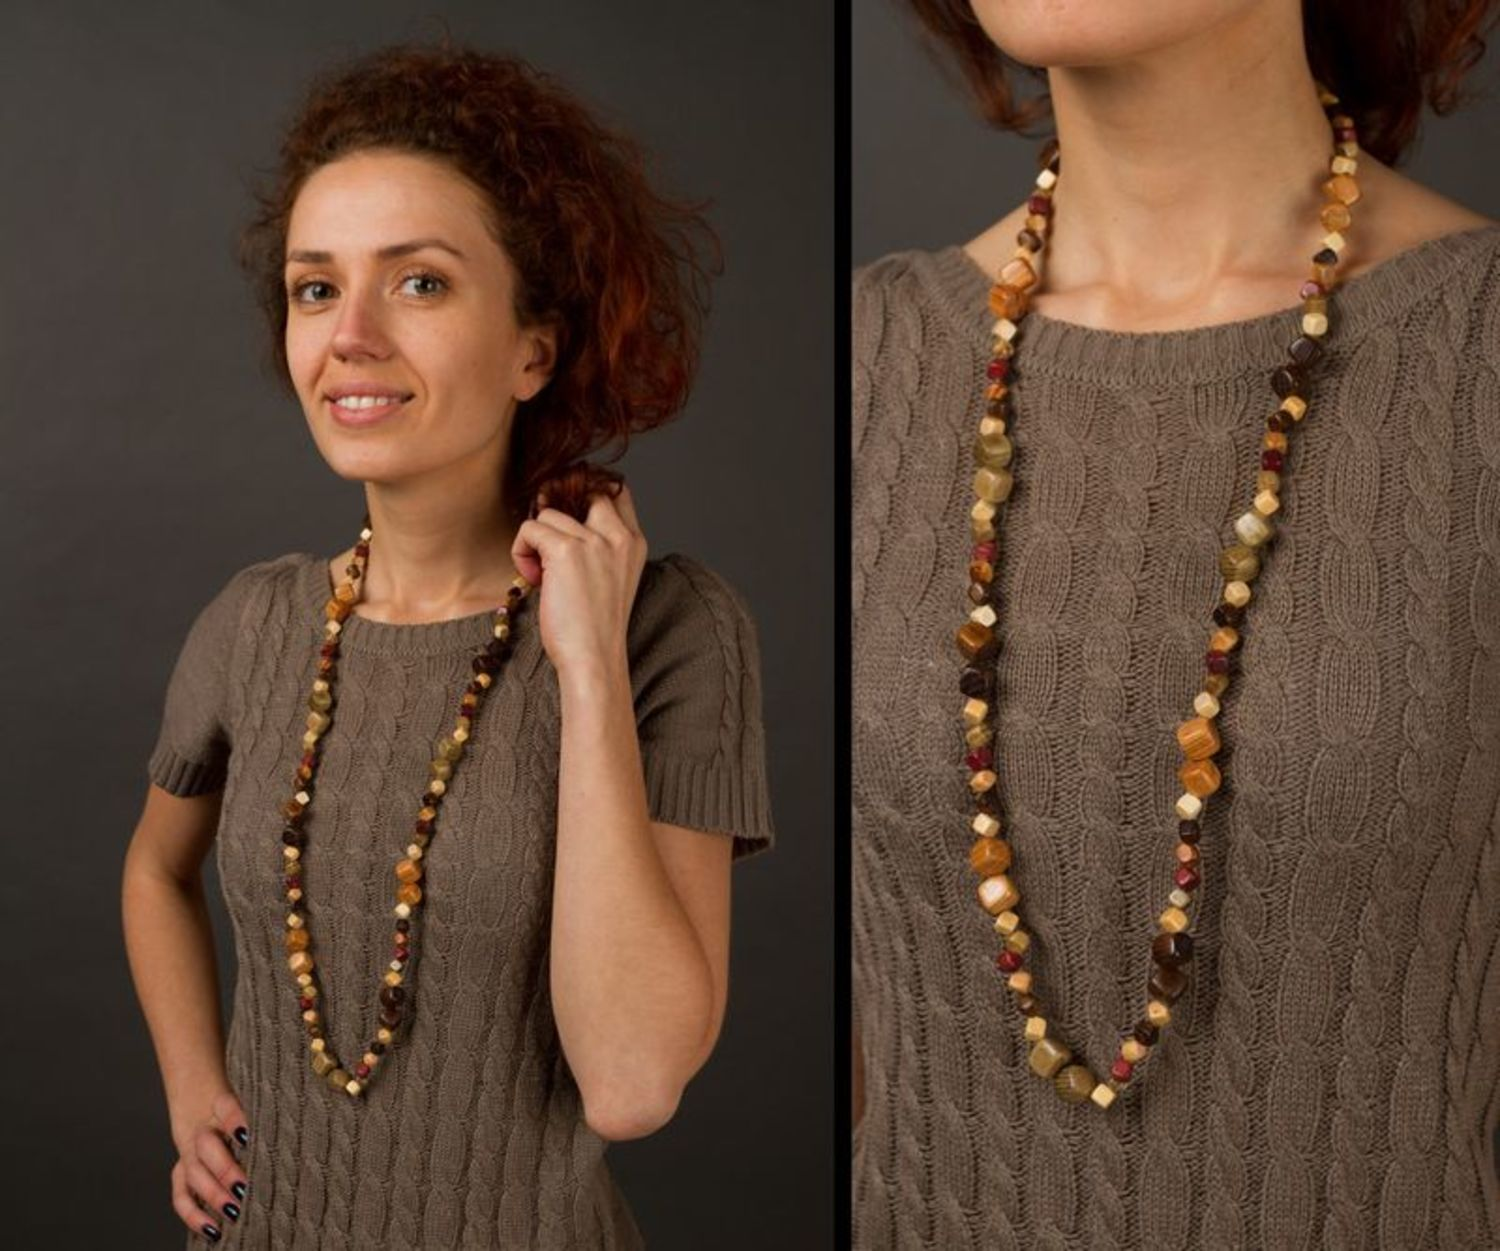 Wooden ethnic beaded necklace photo 2